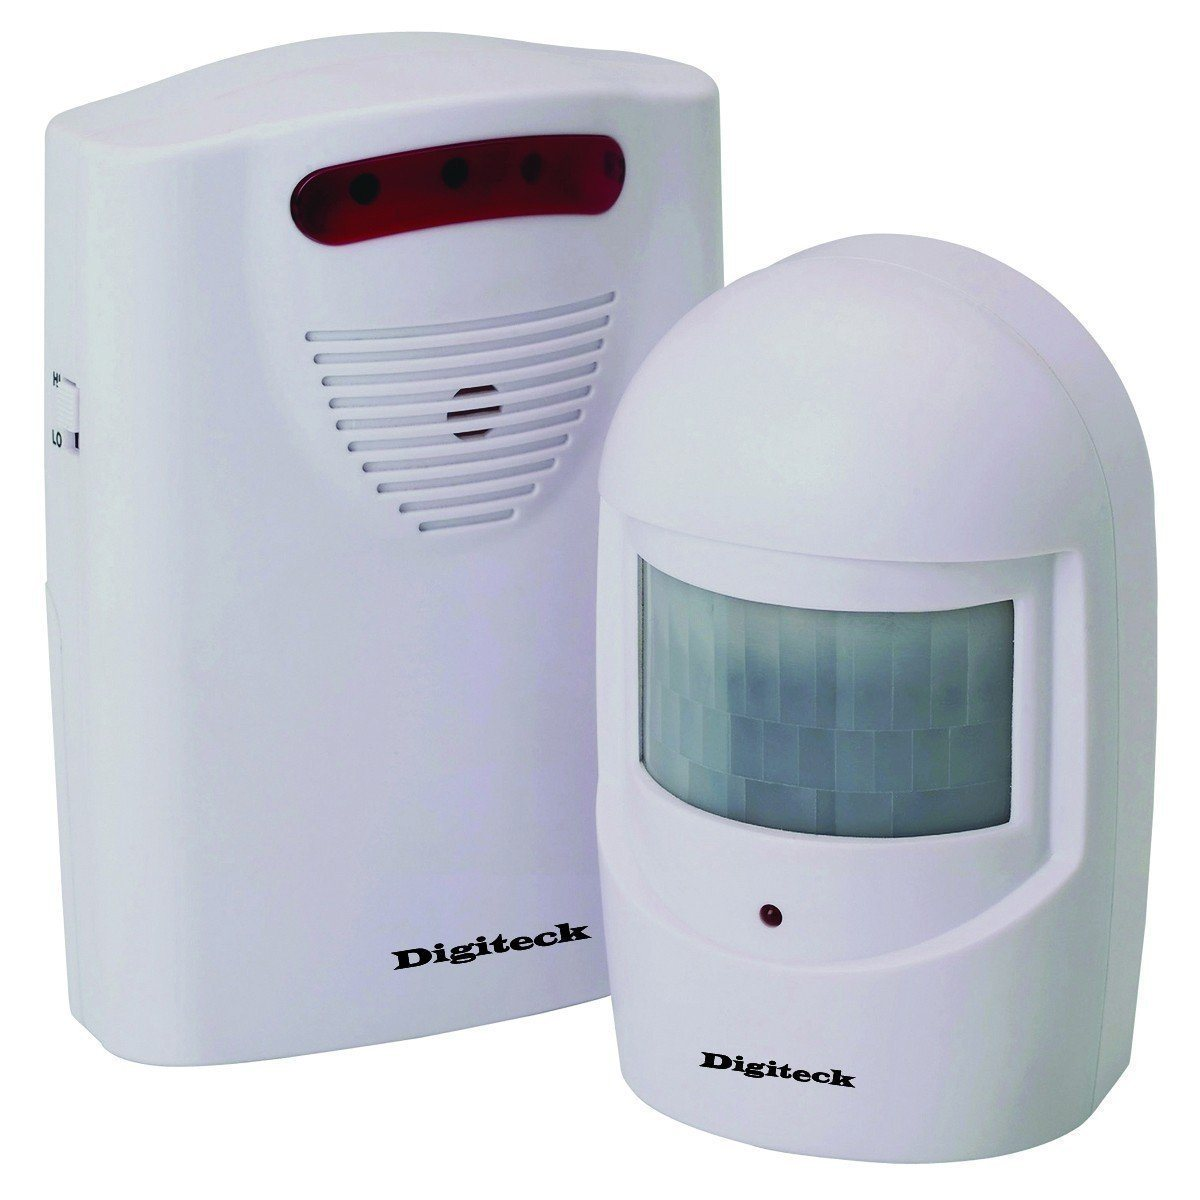 A9- DIY Wireless Weatherproof Garden, Shed, Driveway, Garage, Outbuilding Burglar Security Alarm